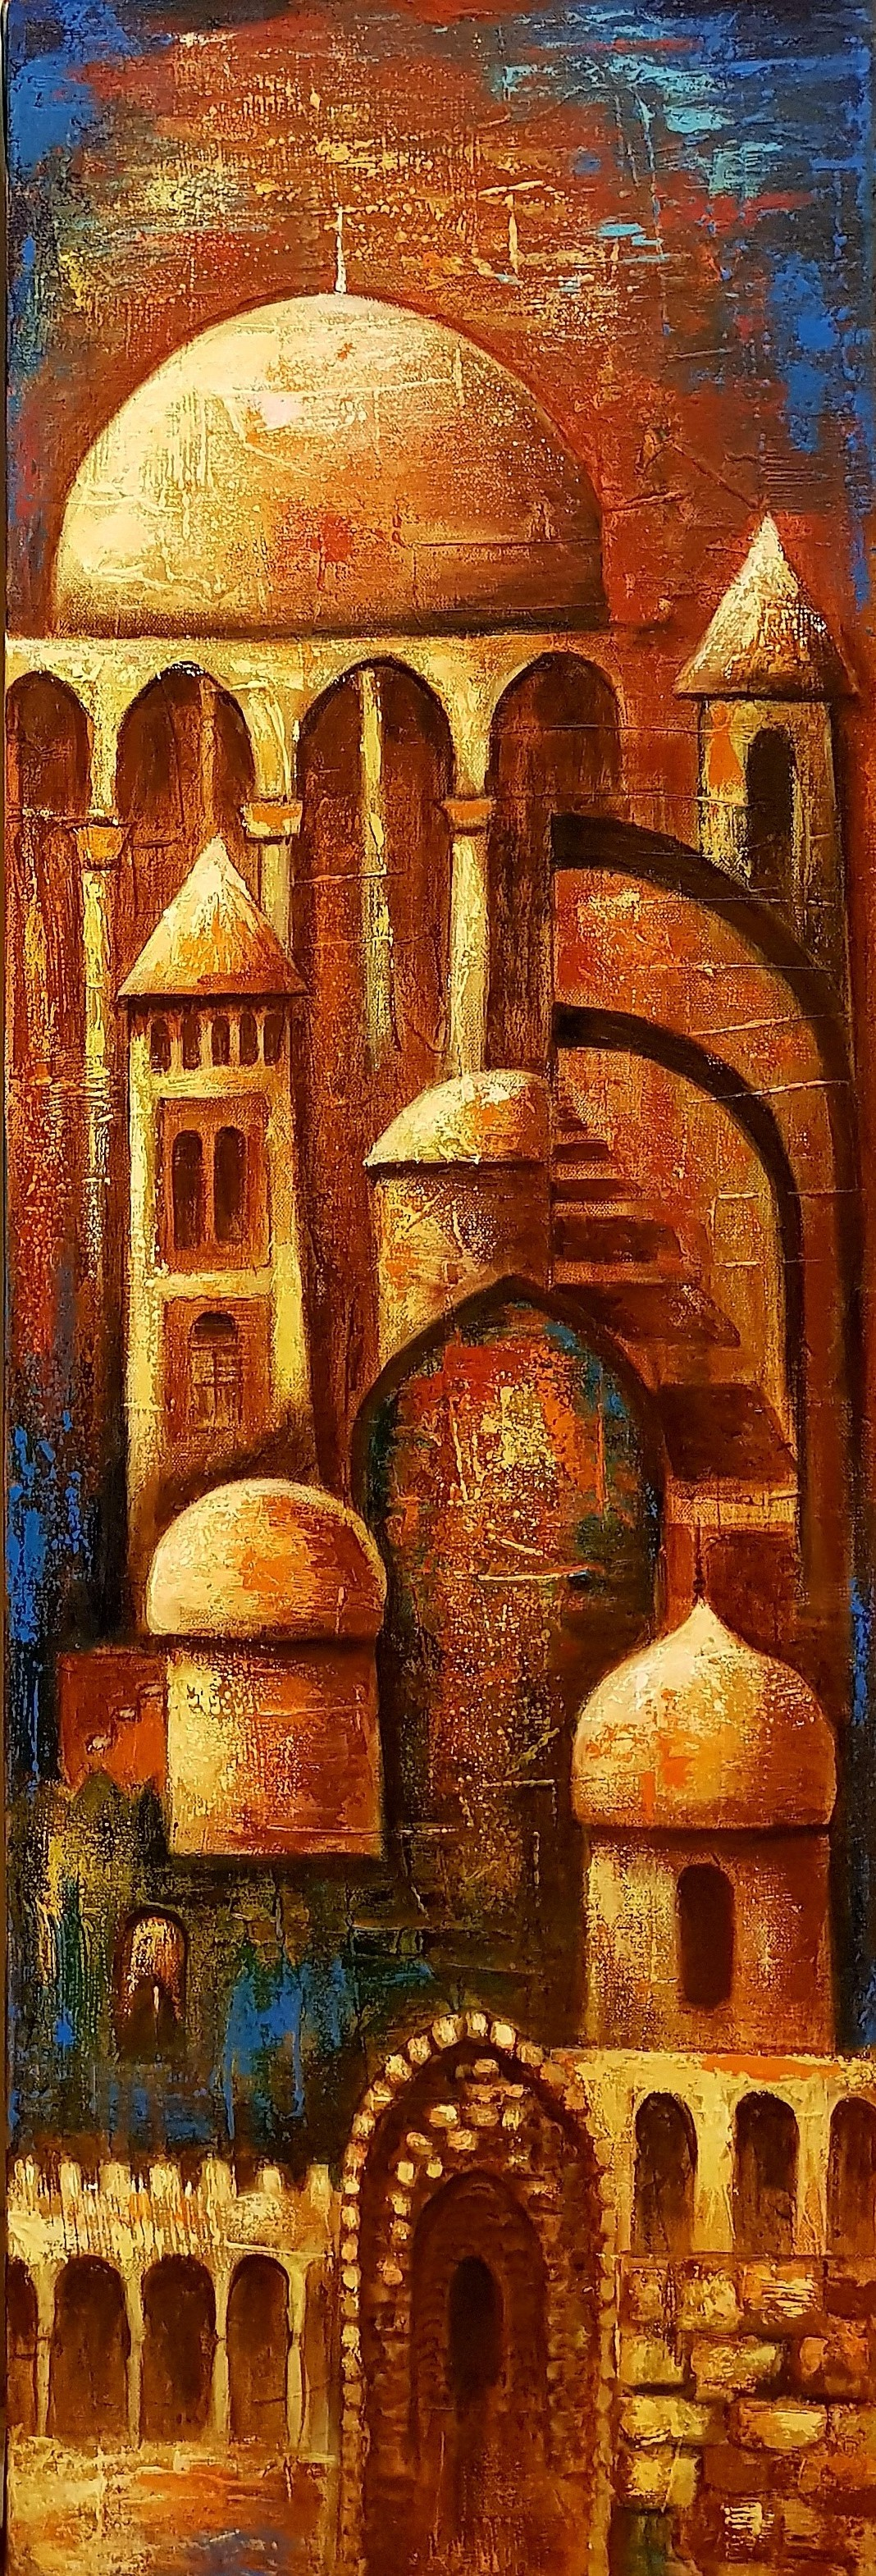 Confluence 2 by Neeti Aggarwal, Expressionism Painting, Acrylic on Canvas, Copper Canyon color